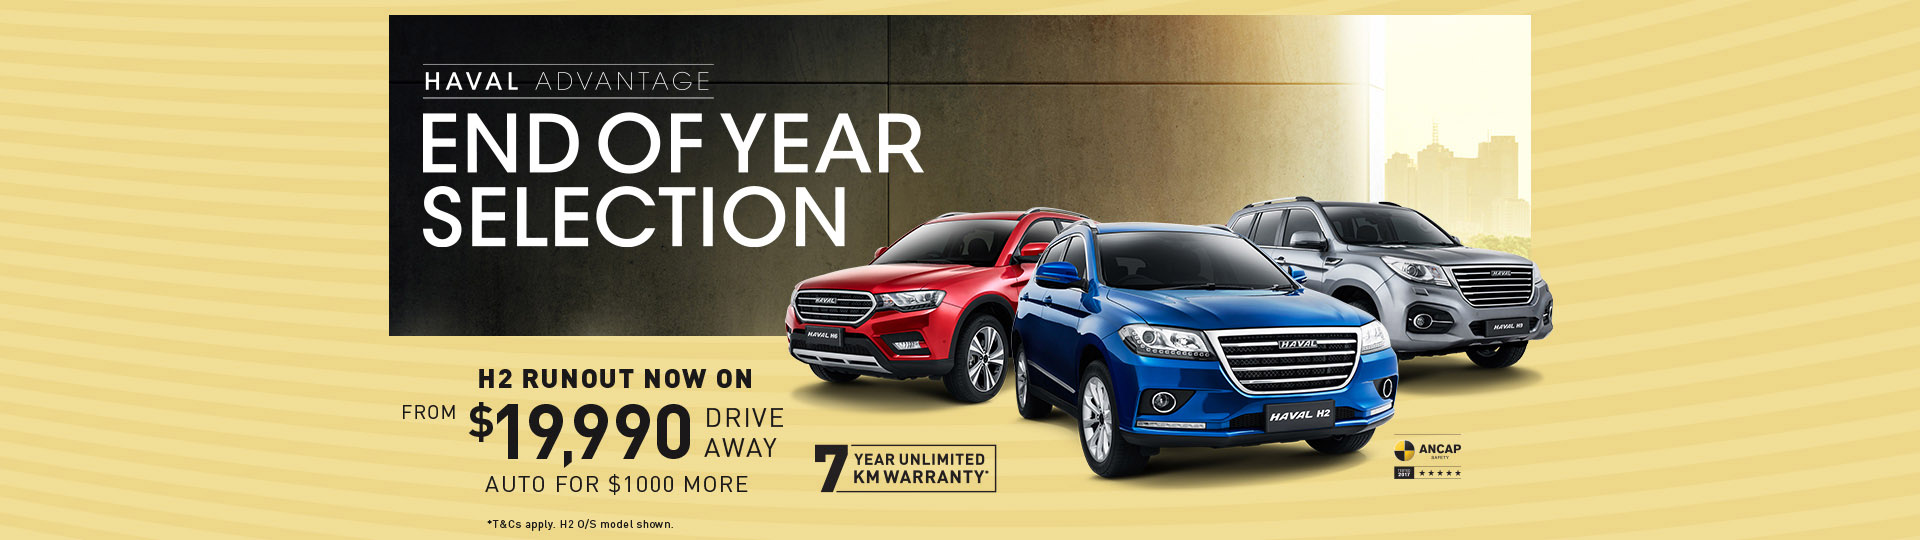 Haval - End of Year Selection